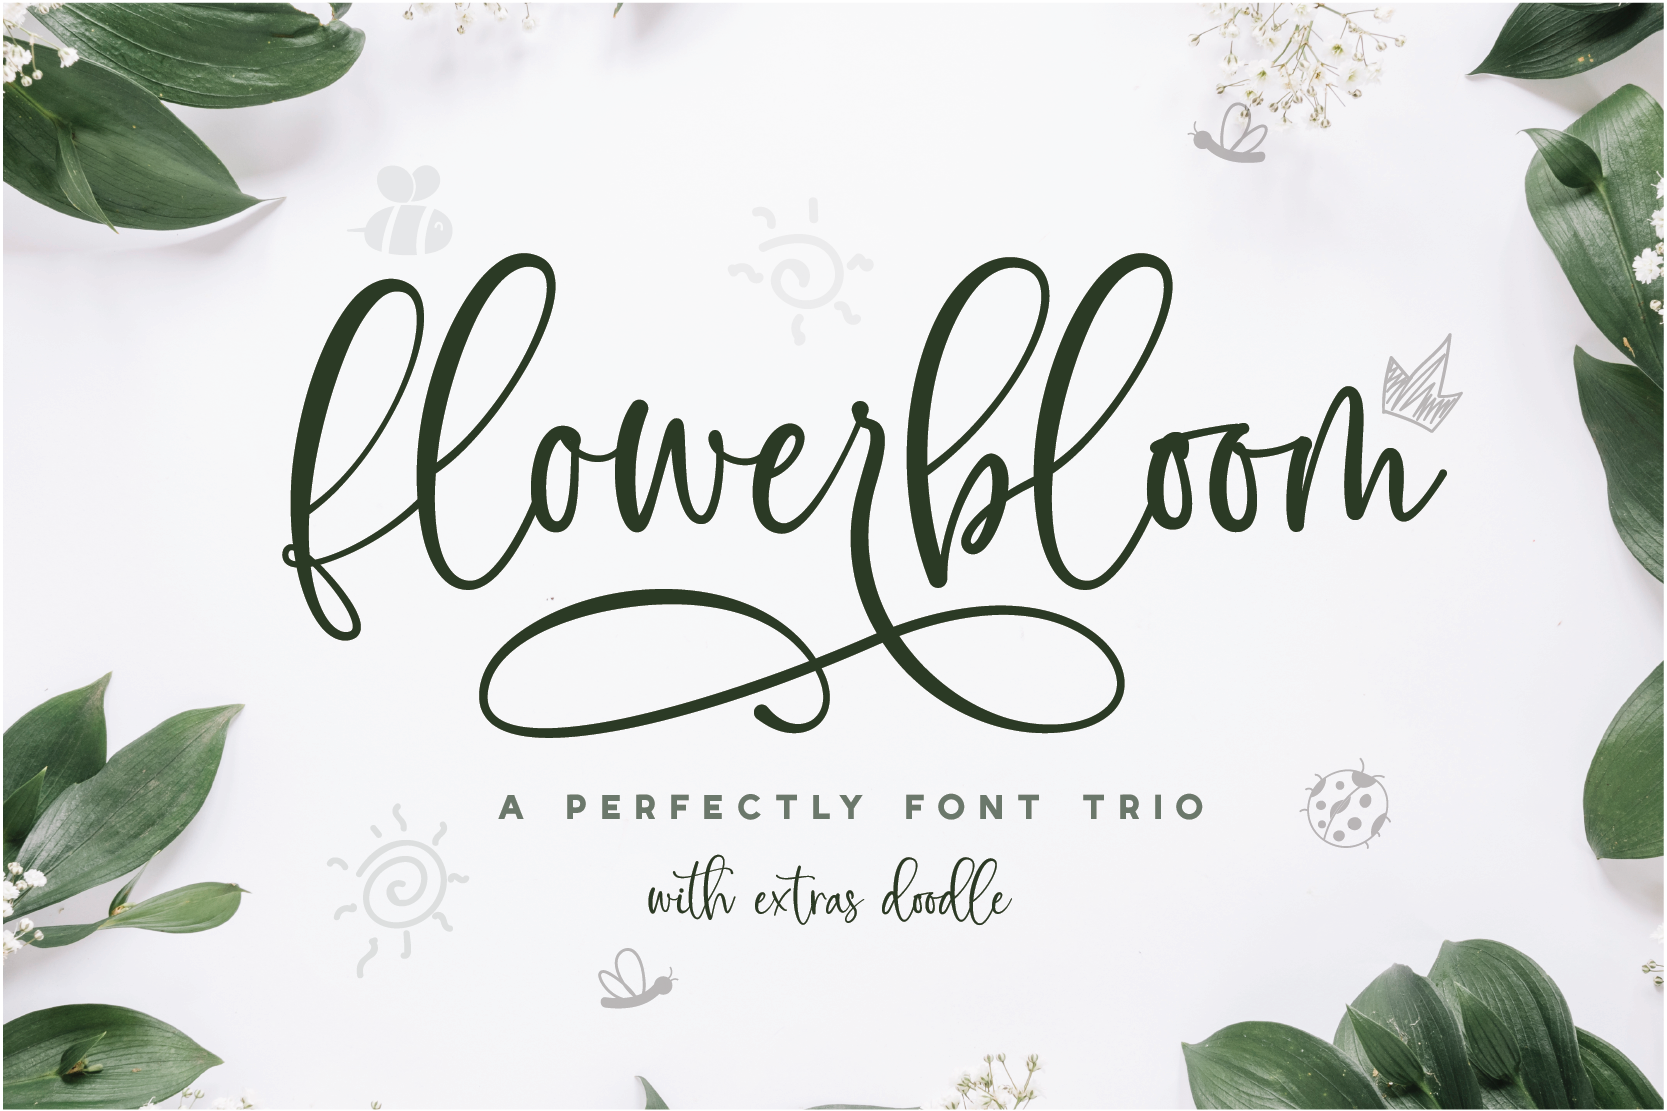 Flowerbloom Font Trio example image 1